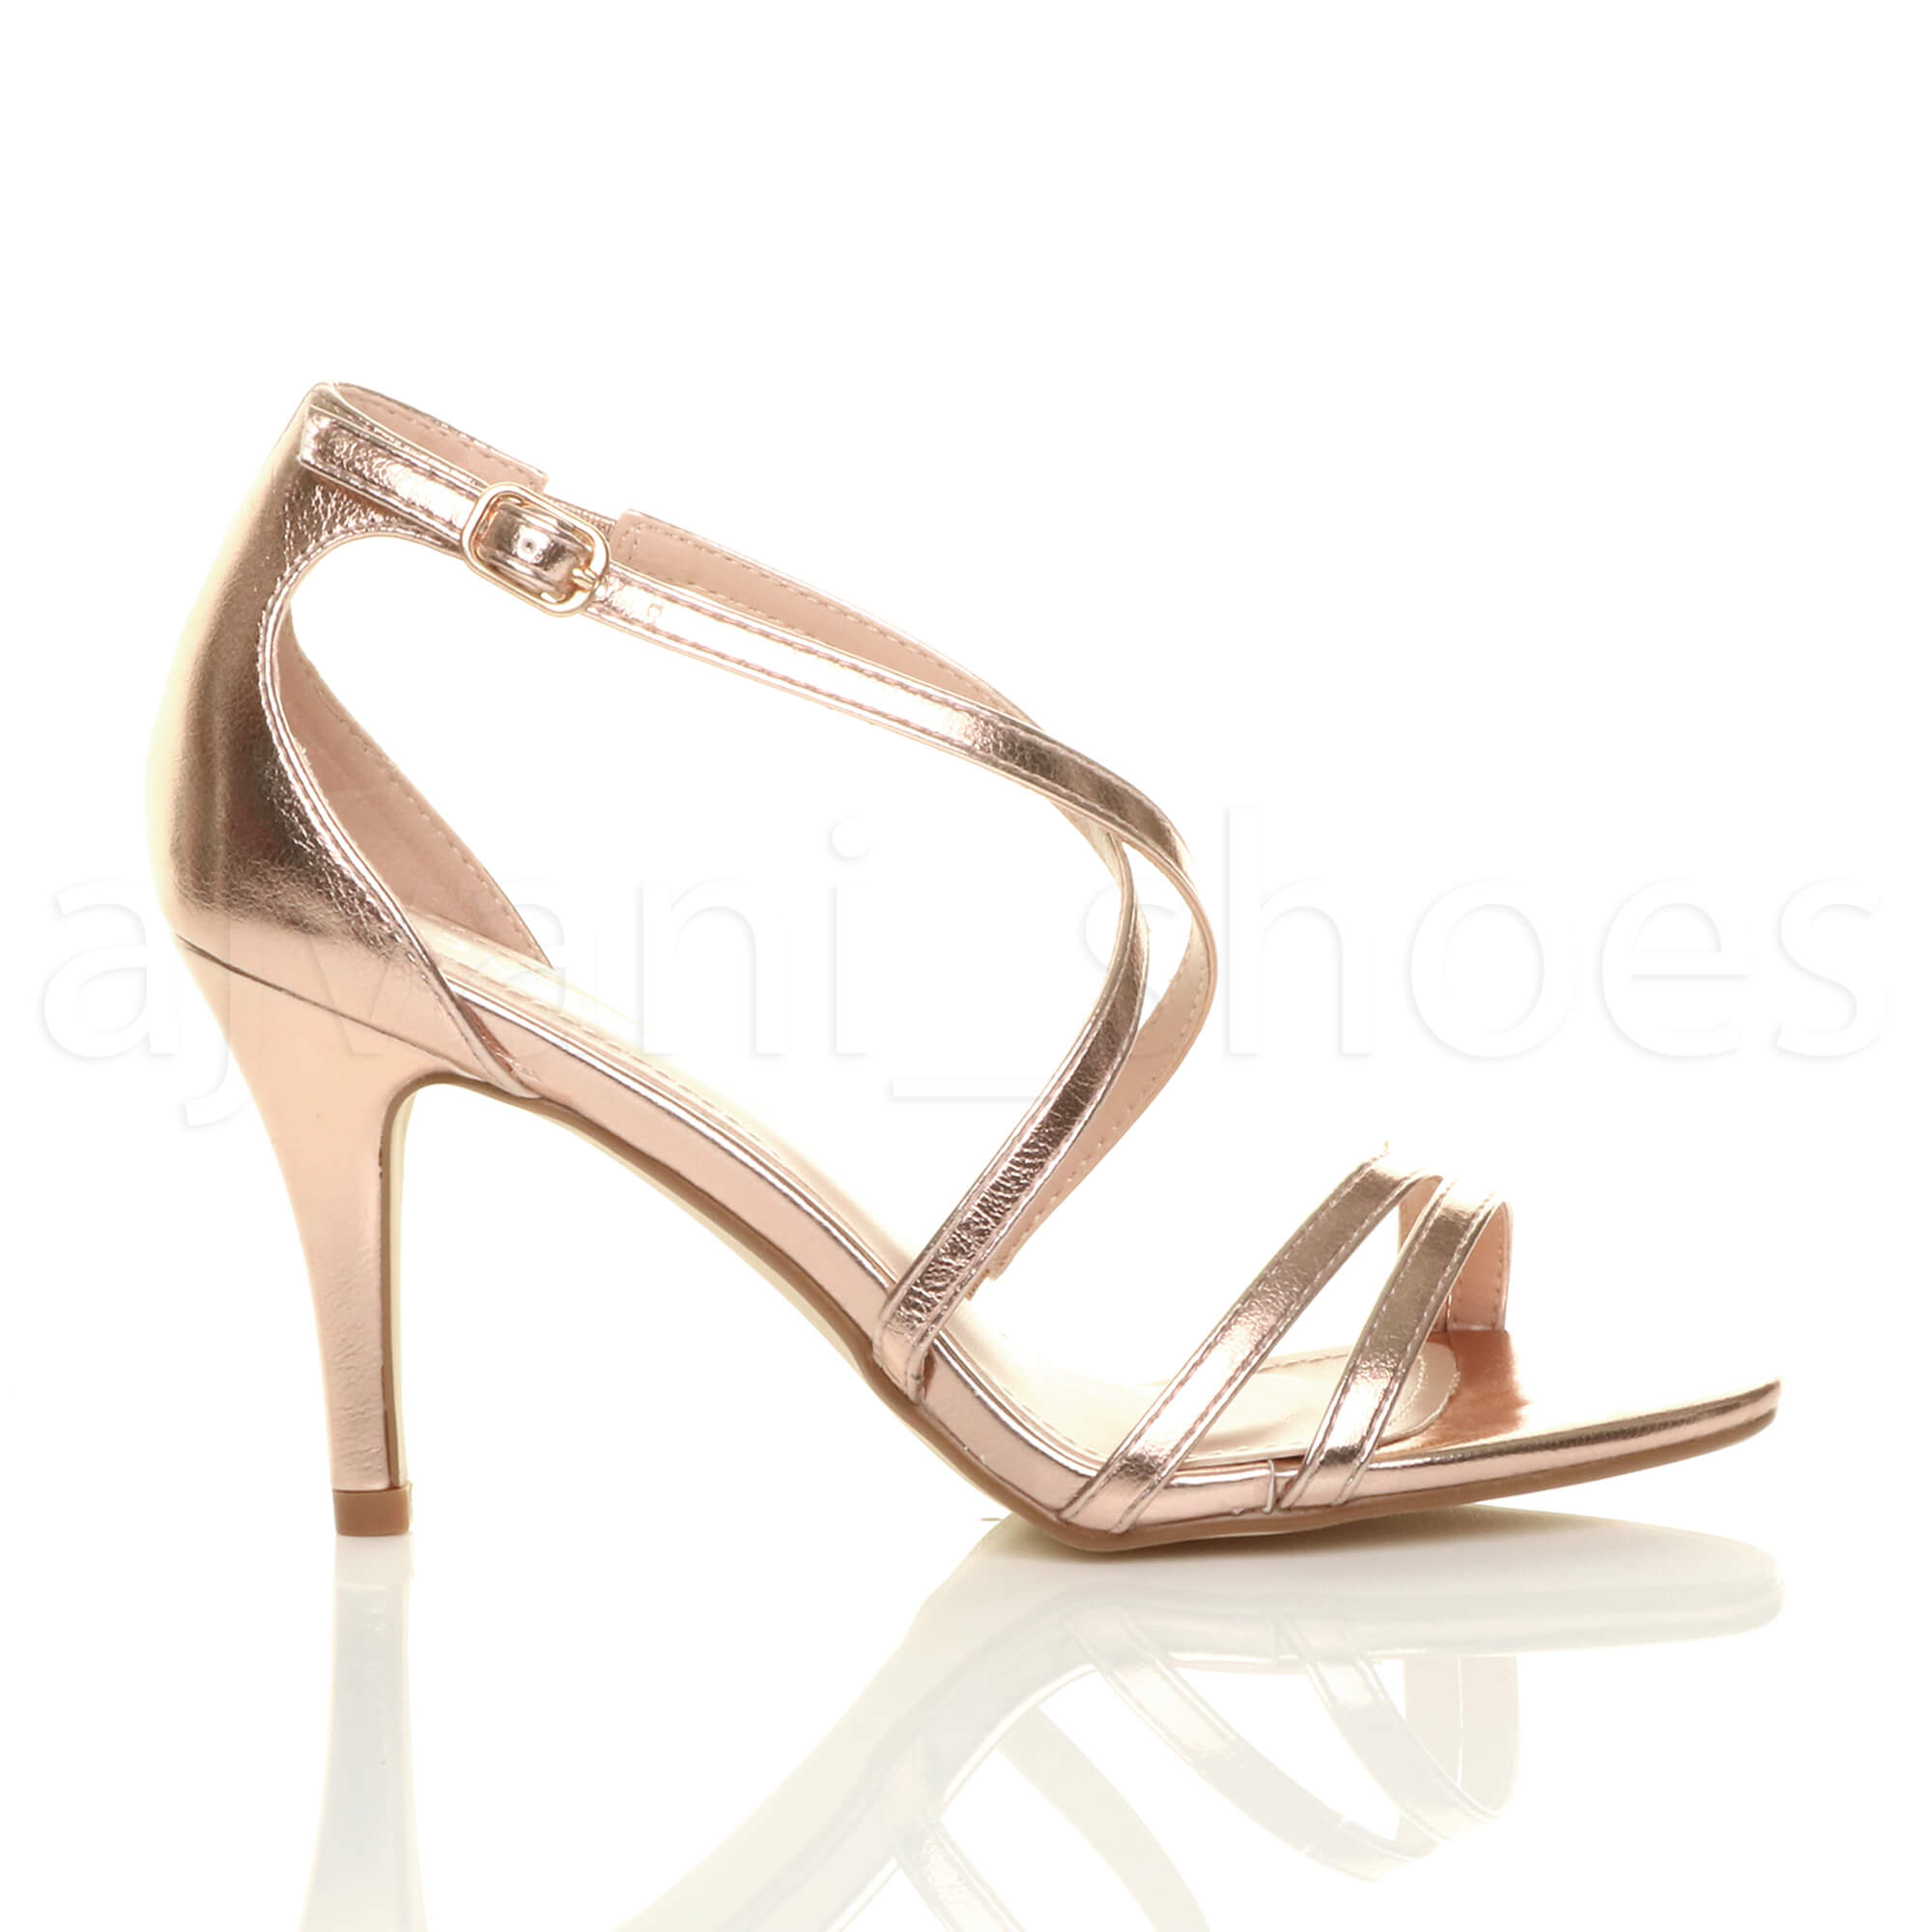 WOMENS-LADIES-MID-HIGH-HEEL-STRAPPY-CROSSOVER-WEDDING-PROM-SANDALS-SHOES-SIZE thumbnail 136